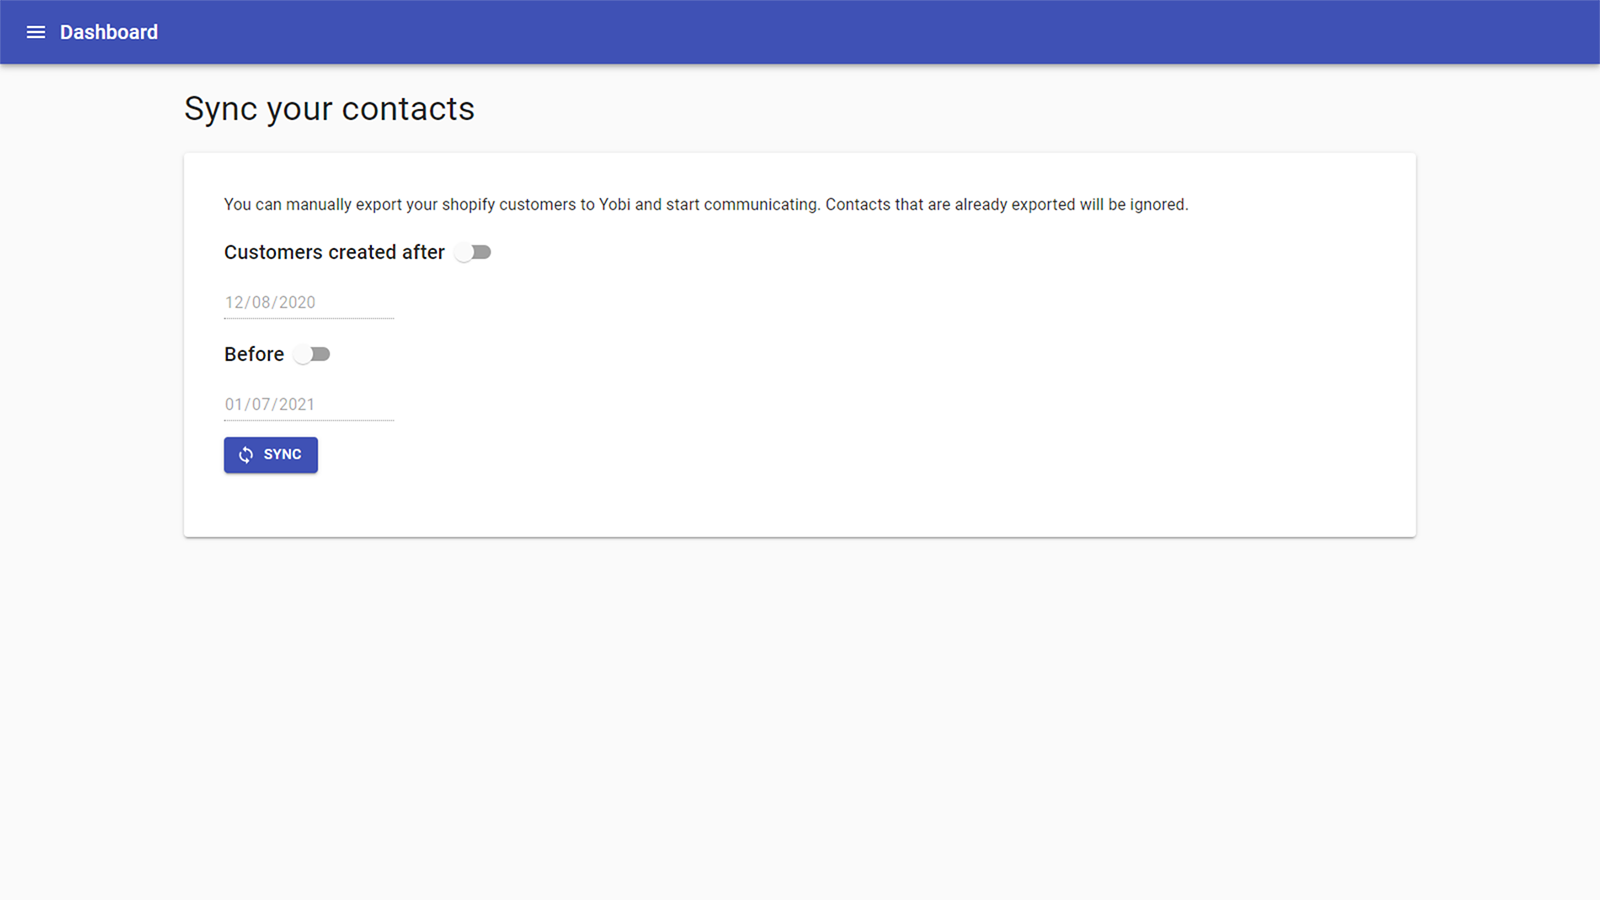 Sync your contacts